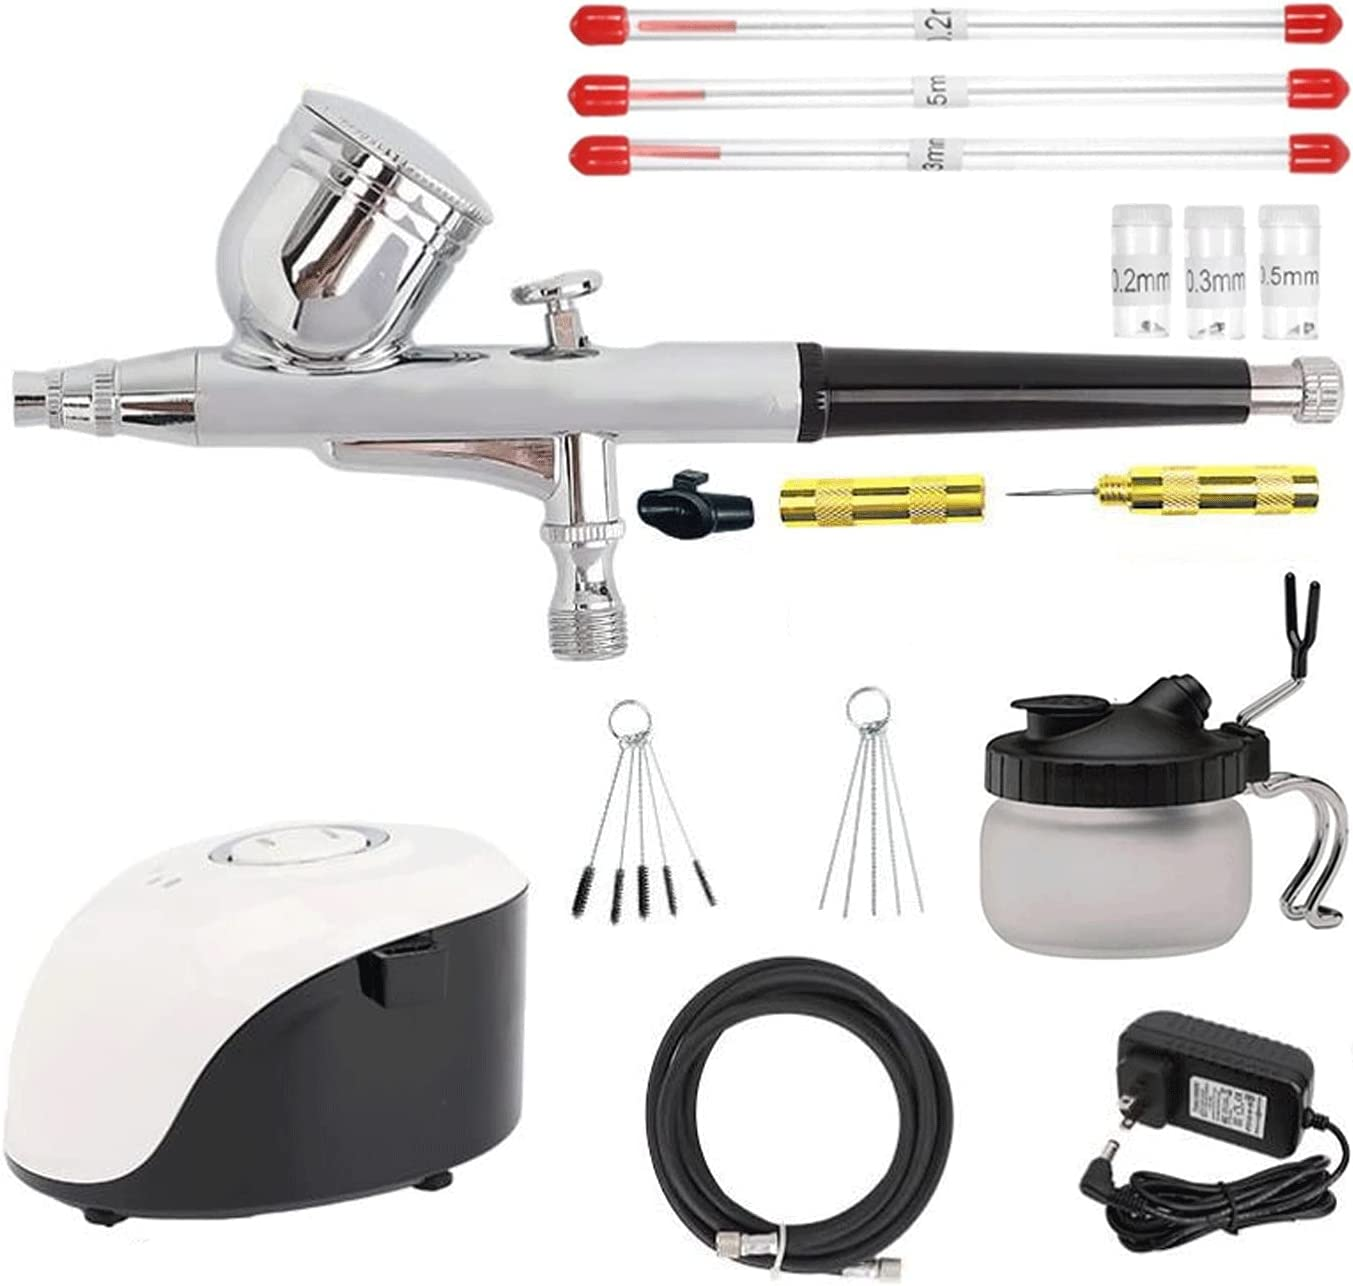 Uioy Dual-Action New item Airbrush Kit ST-19 Virginia Beach Mall with Adjustable Compressor